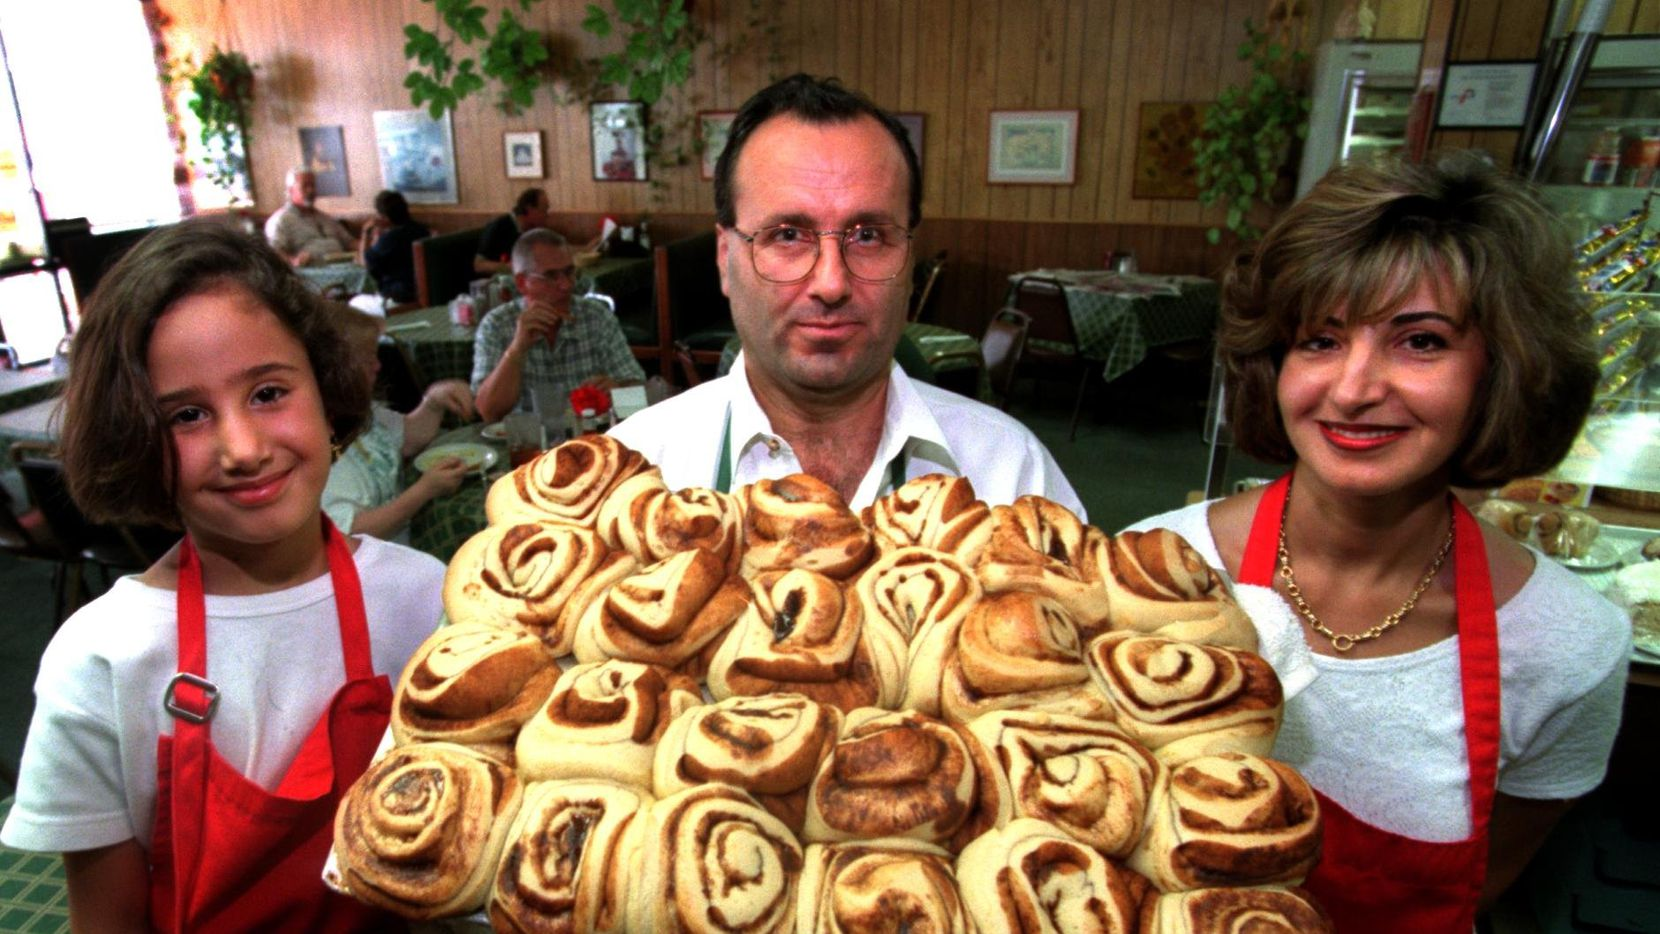 In this 2003 file photo, Tony Richa holds some fresh cinnamon rolls with his daughter Petra (left) and wife Lina at Tony's Cafe in Plano.